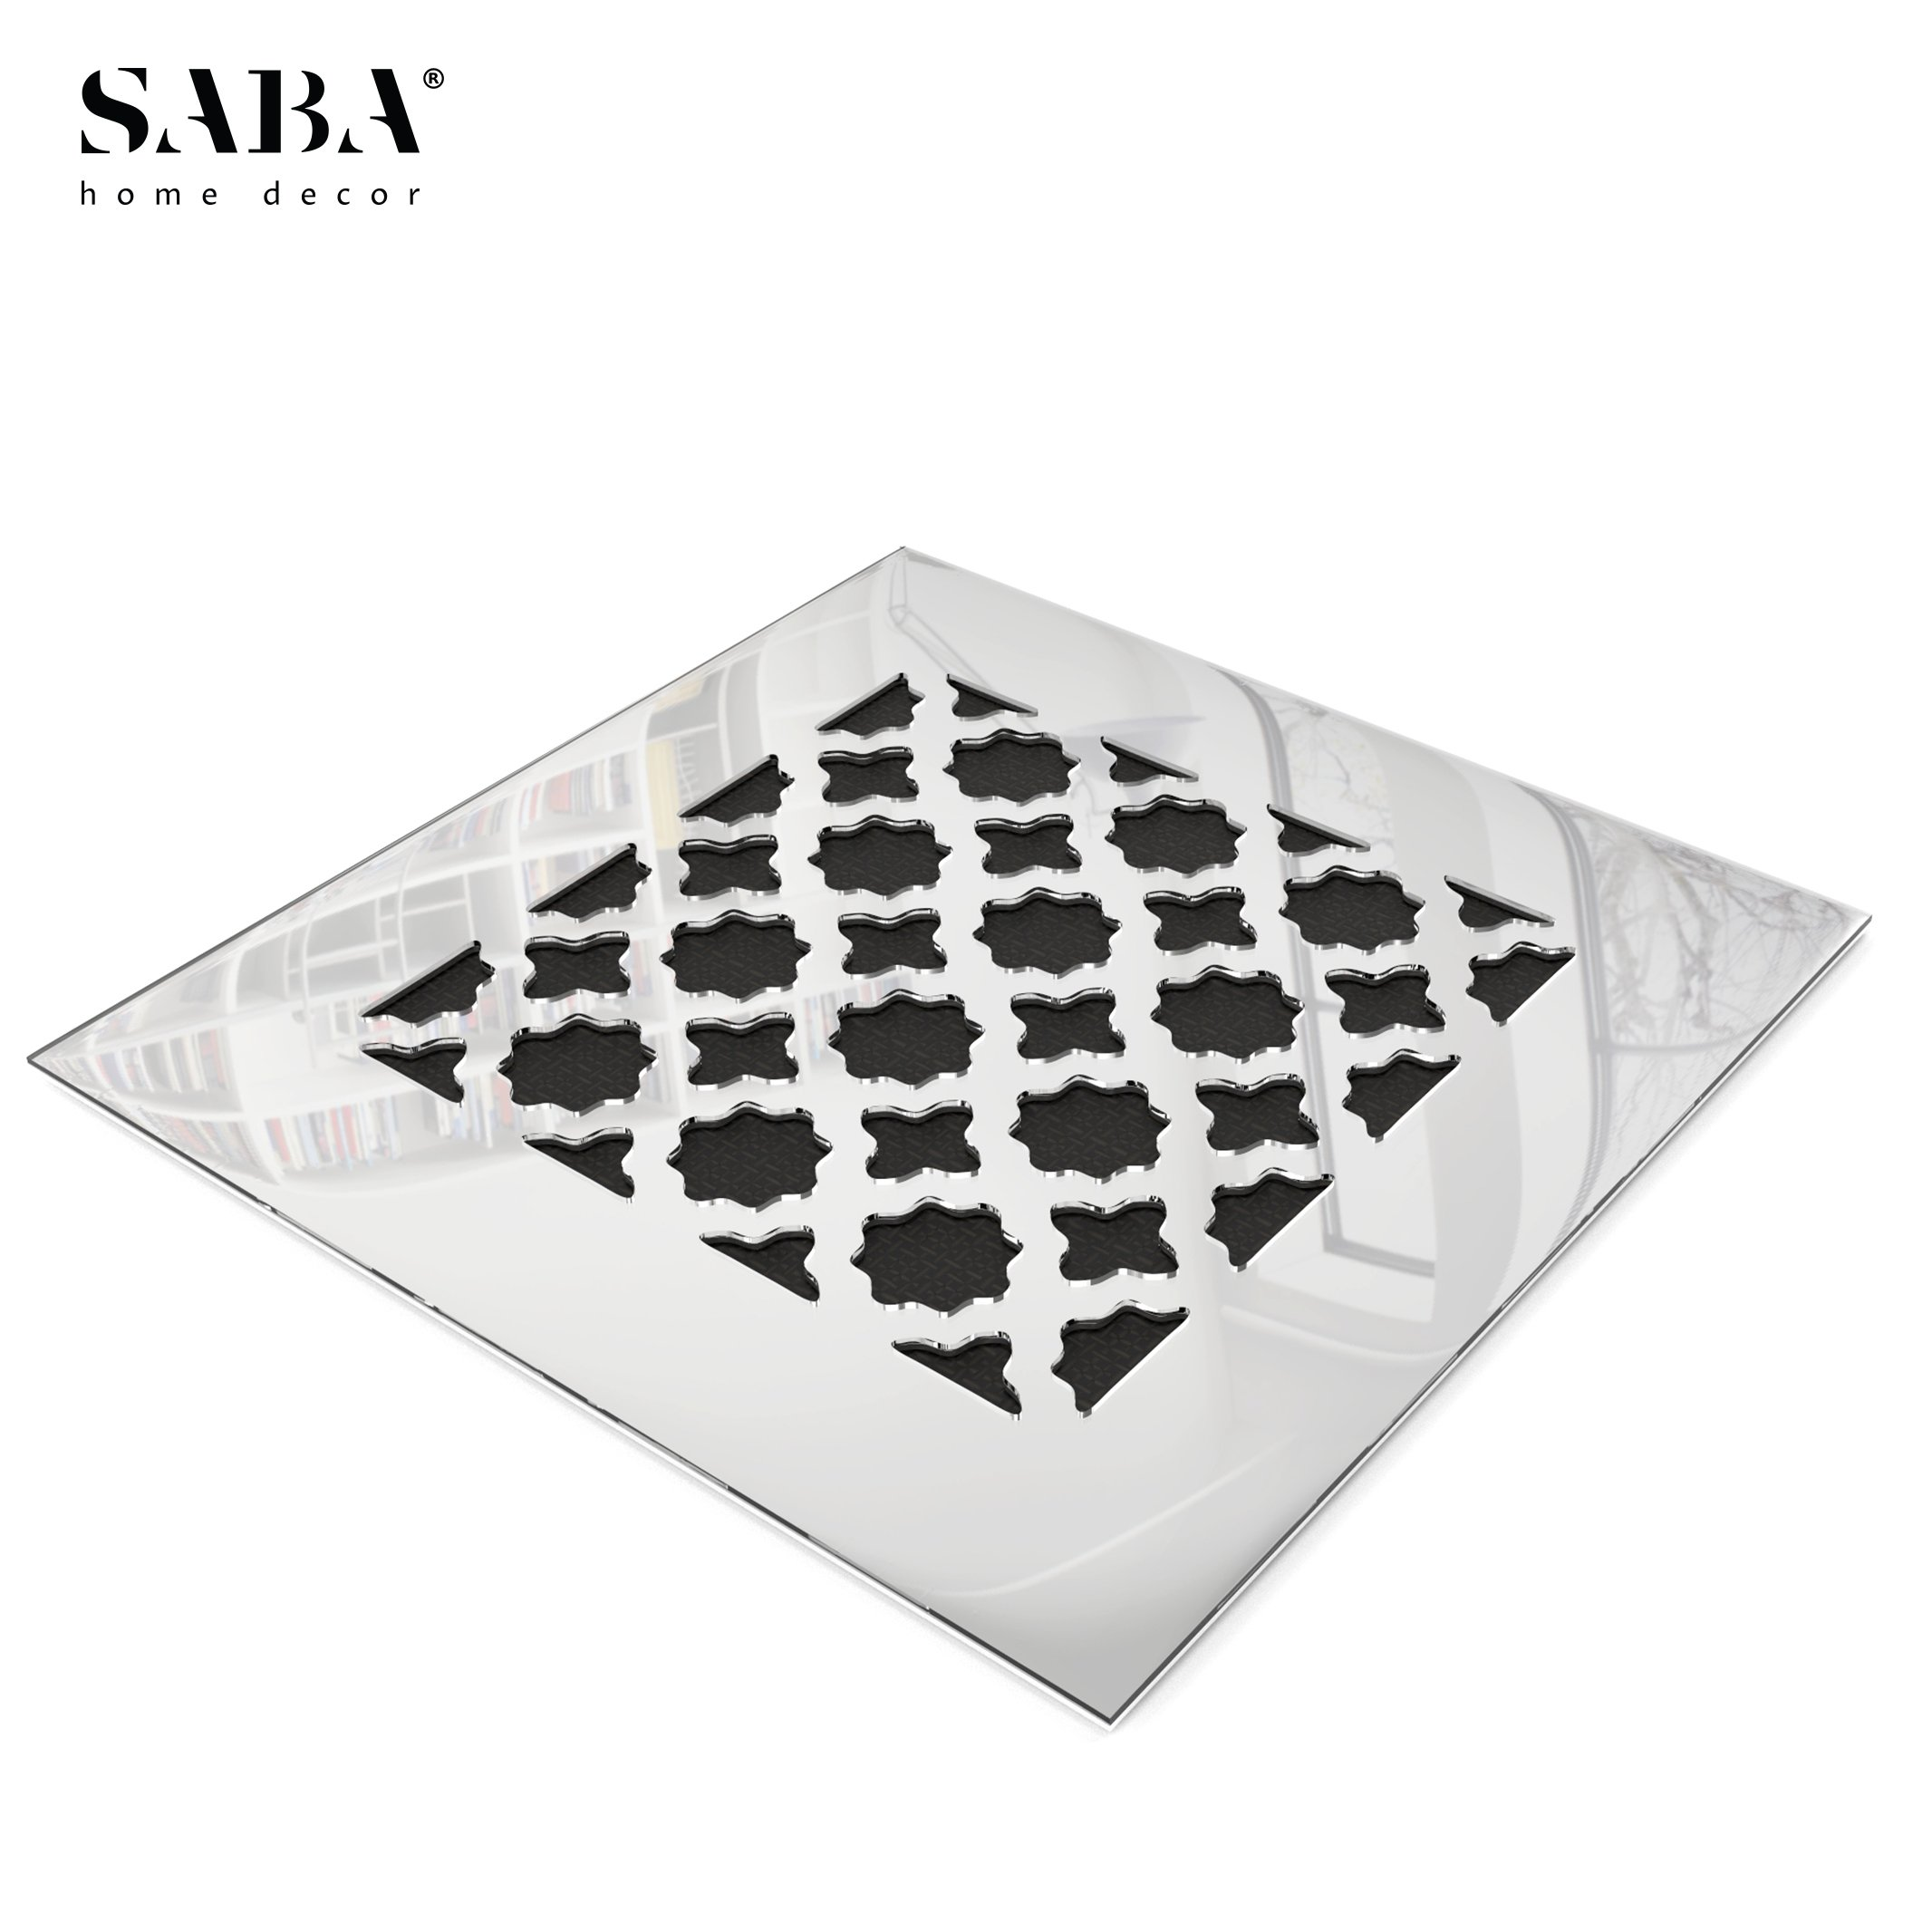 SABA FiberGlass Decorative Grille Vent Return Register Easy Air Flow Venetian Style Cover 20 inch x 20 inch (23'' x 23'' Overall). For Walls and Ceilings (not for Floor use), Mirror Finish